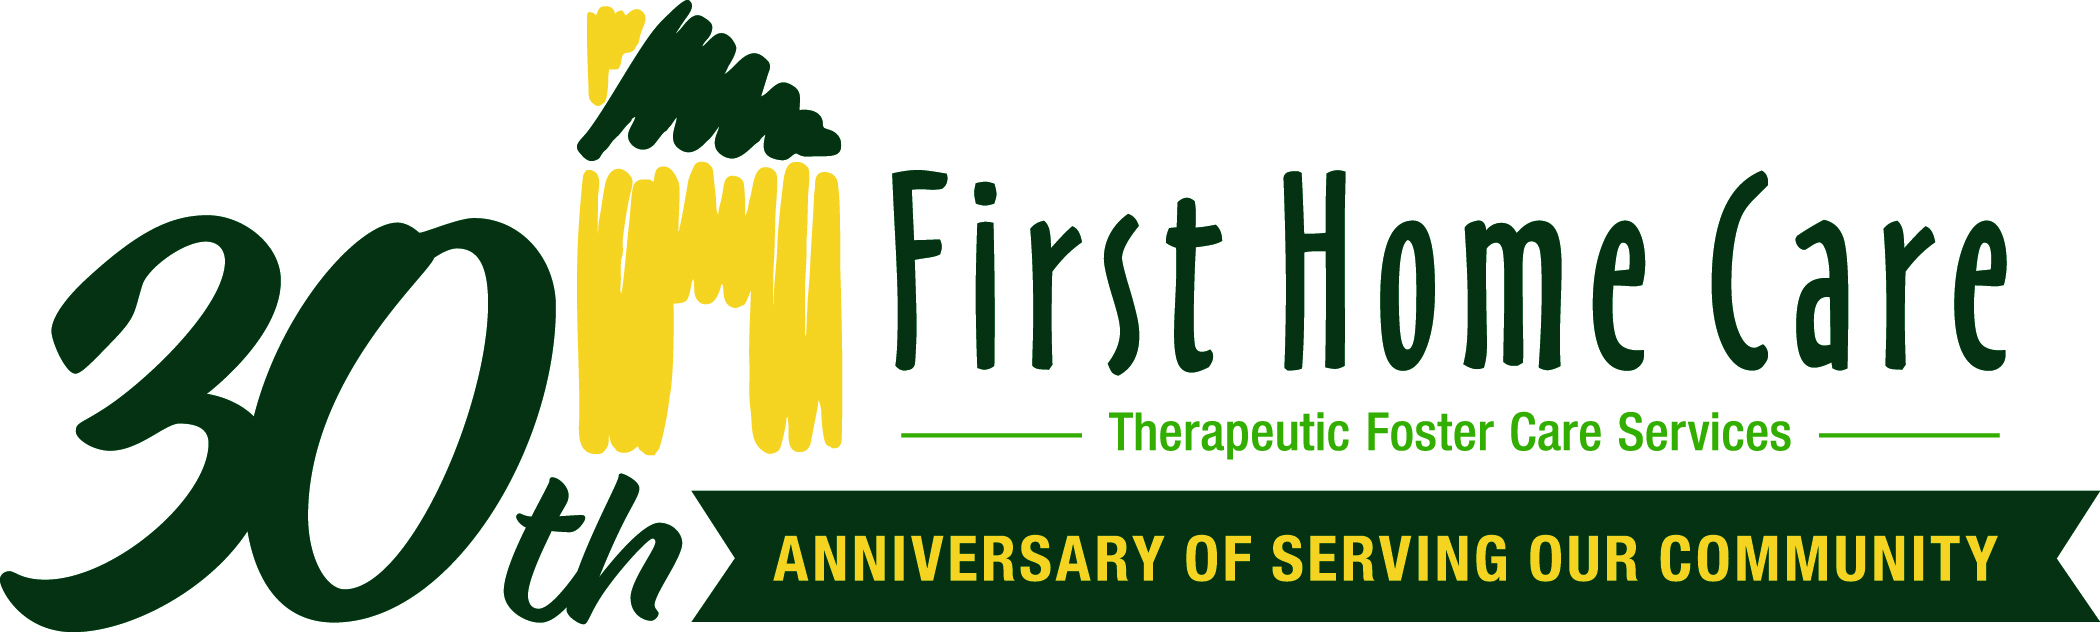 First Home Care Therapeutic Foster Care and Adoption Services Celebrating 30 Years of Serving our Community